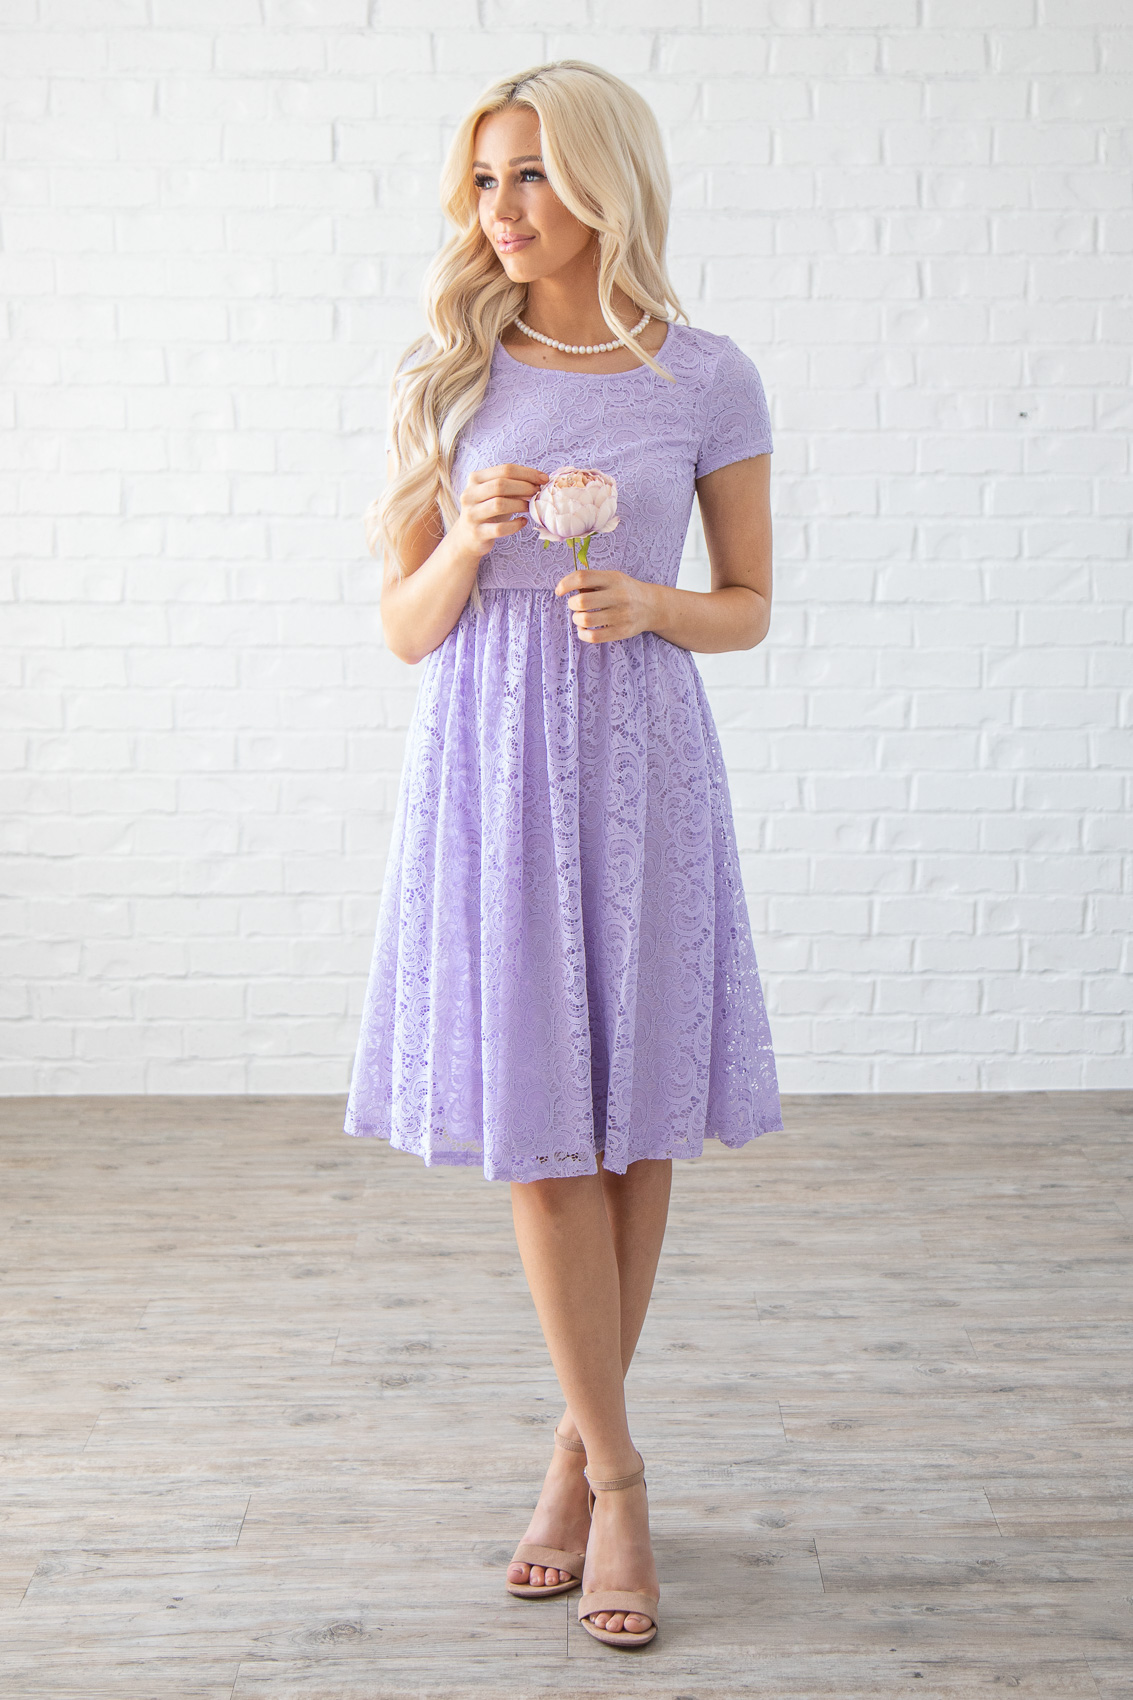 839c1b4eec4 Jenna Modest Lace Dress or Bridesmaid Dress in Pastel Lilac   Lavender